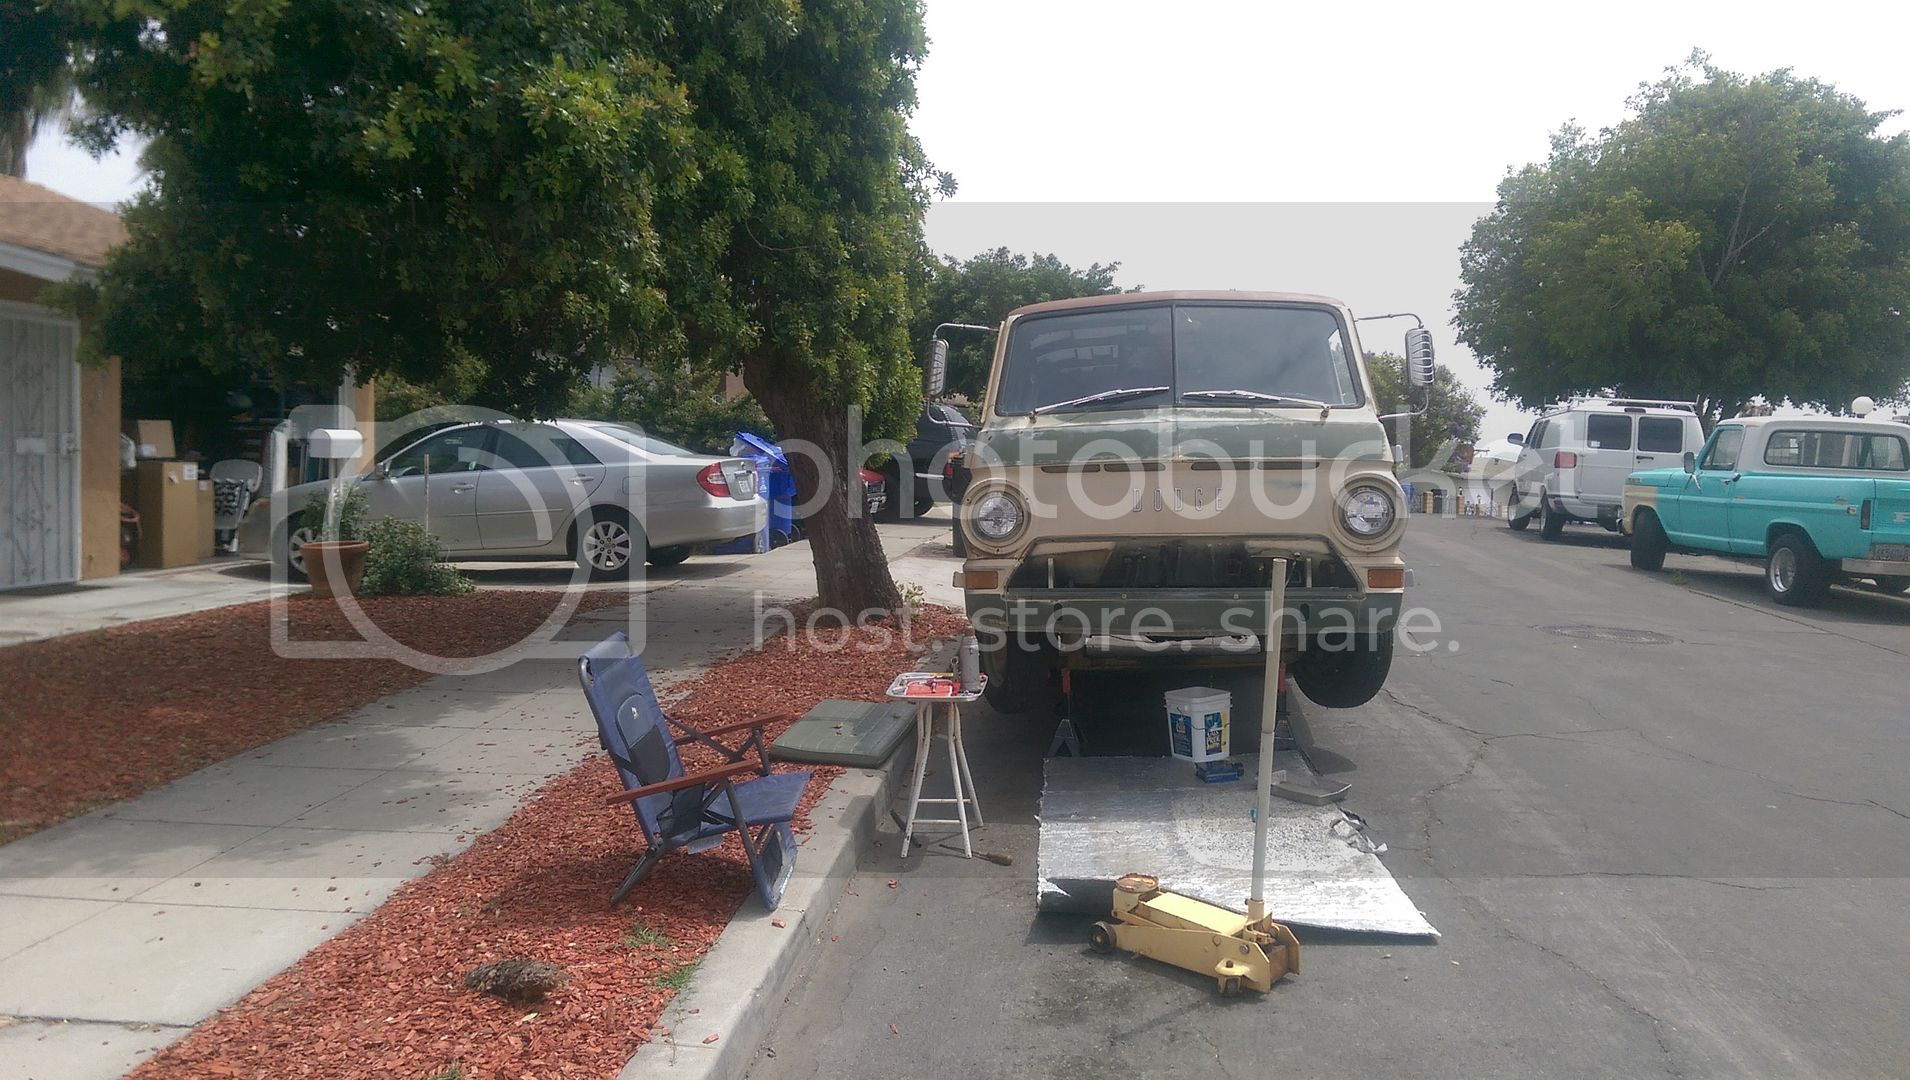 Dawgvan: A '64 A100 Build thread - Page 6 IMAG1307_zpsj4fyf3qp